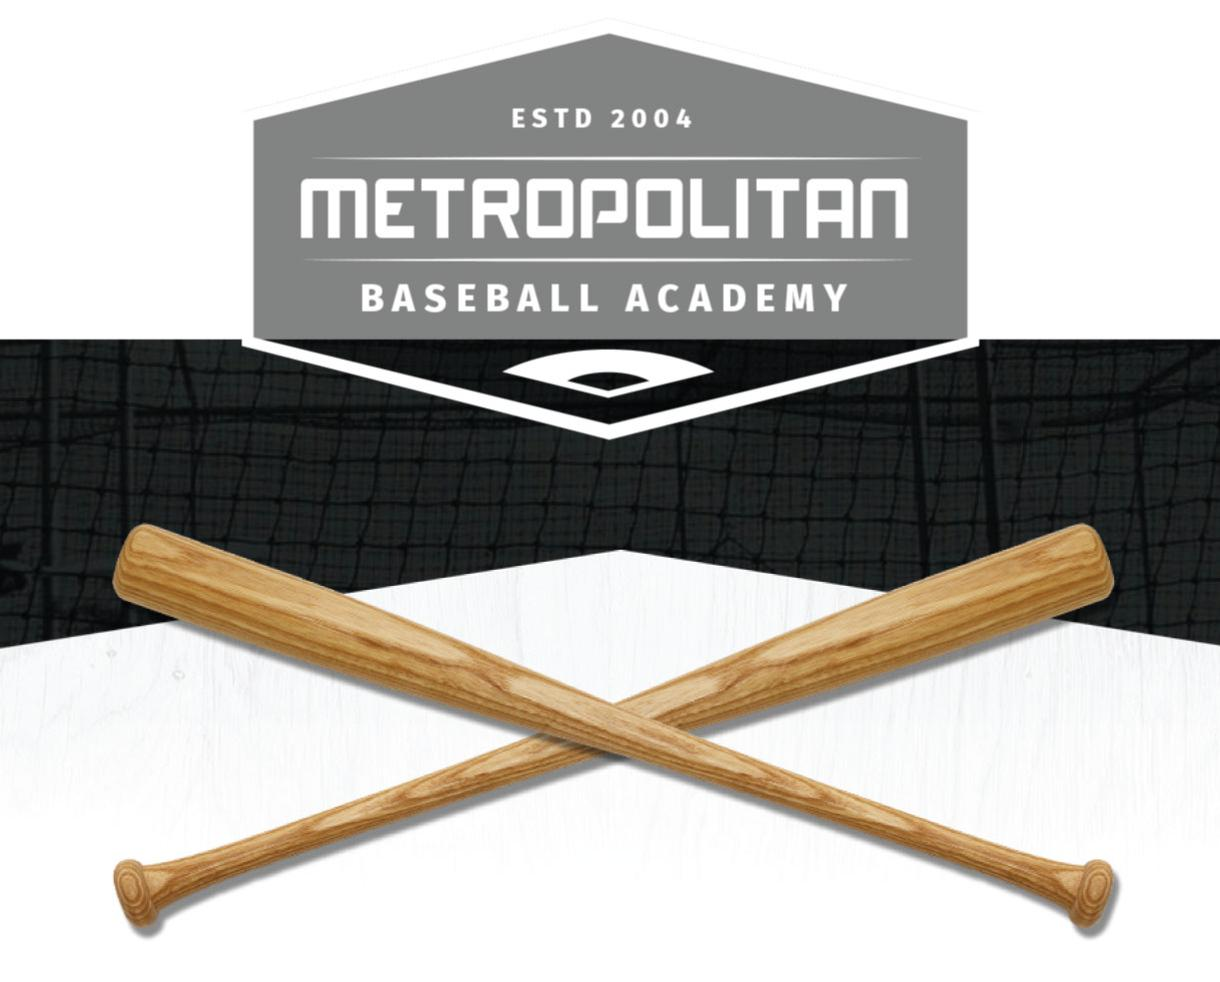 $90 for Metropolitan Baseball Academy Advanced Summer Camp for Ages 10-14 in Lorton ($125 Value - 29% Off)